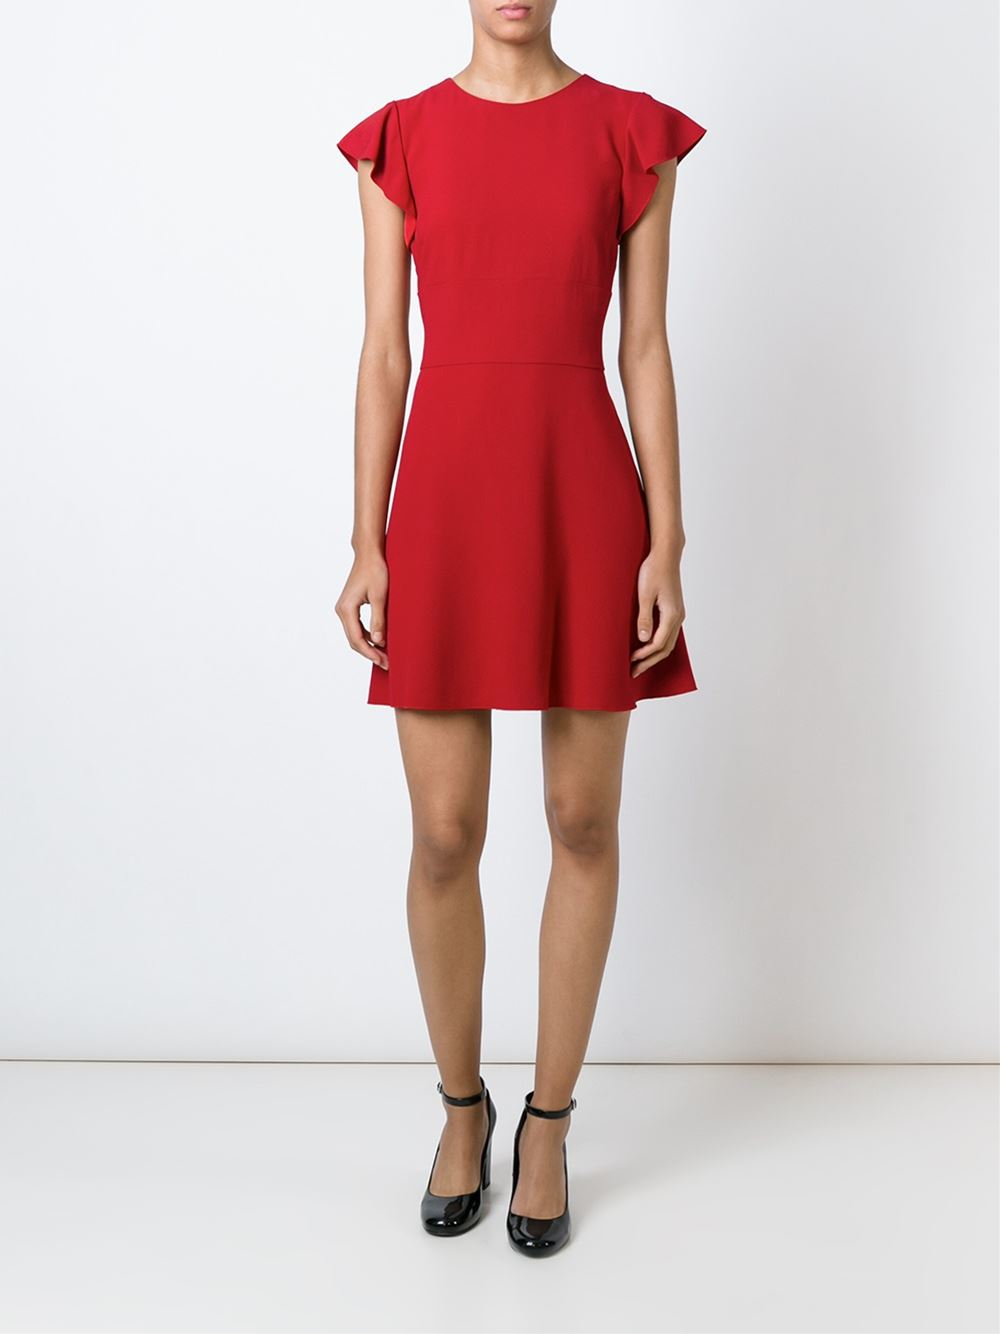 Red Valentino Spring 2016: Red Valentino Shortsleeved Flared Dress In Red